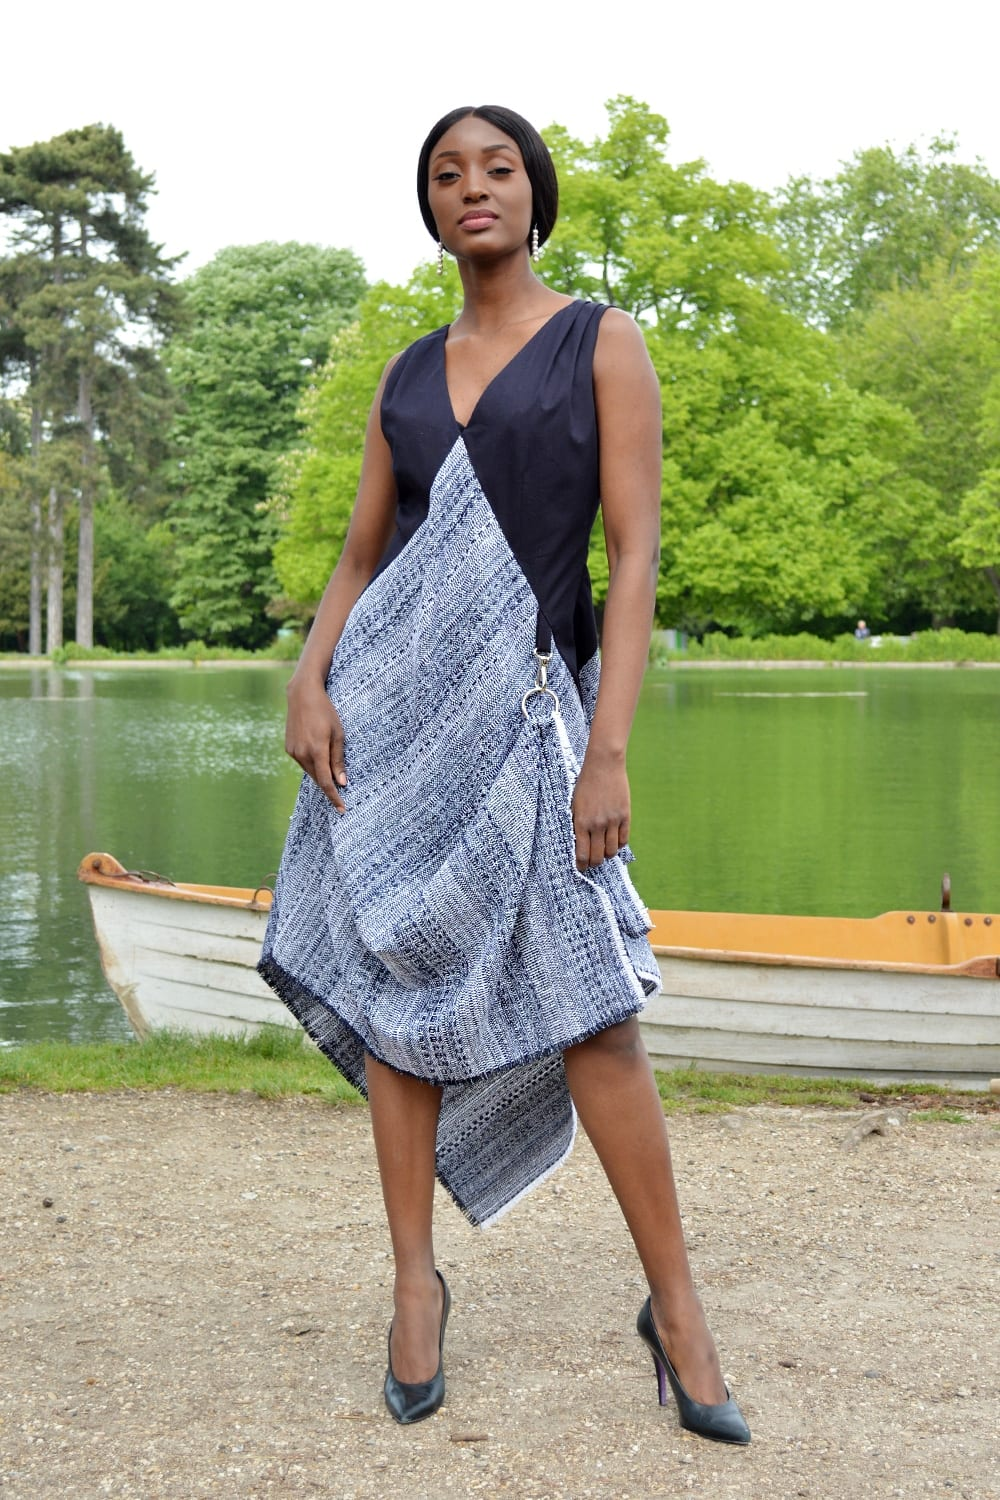 Designer long dress in navy blue tweed and cotton gabardine. Ready-to-wear collection summer 2019 handmade in our Parisian workshop.